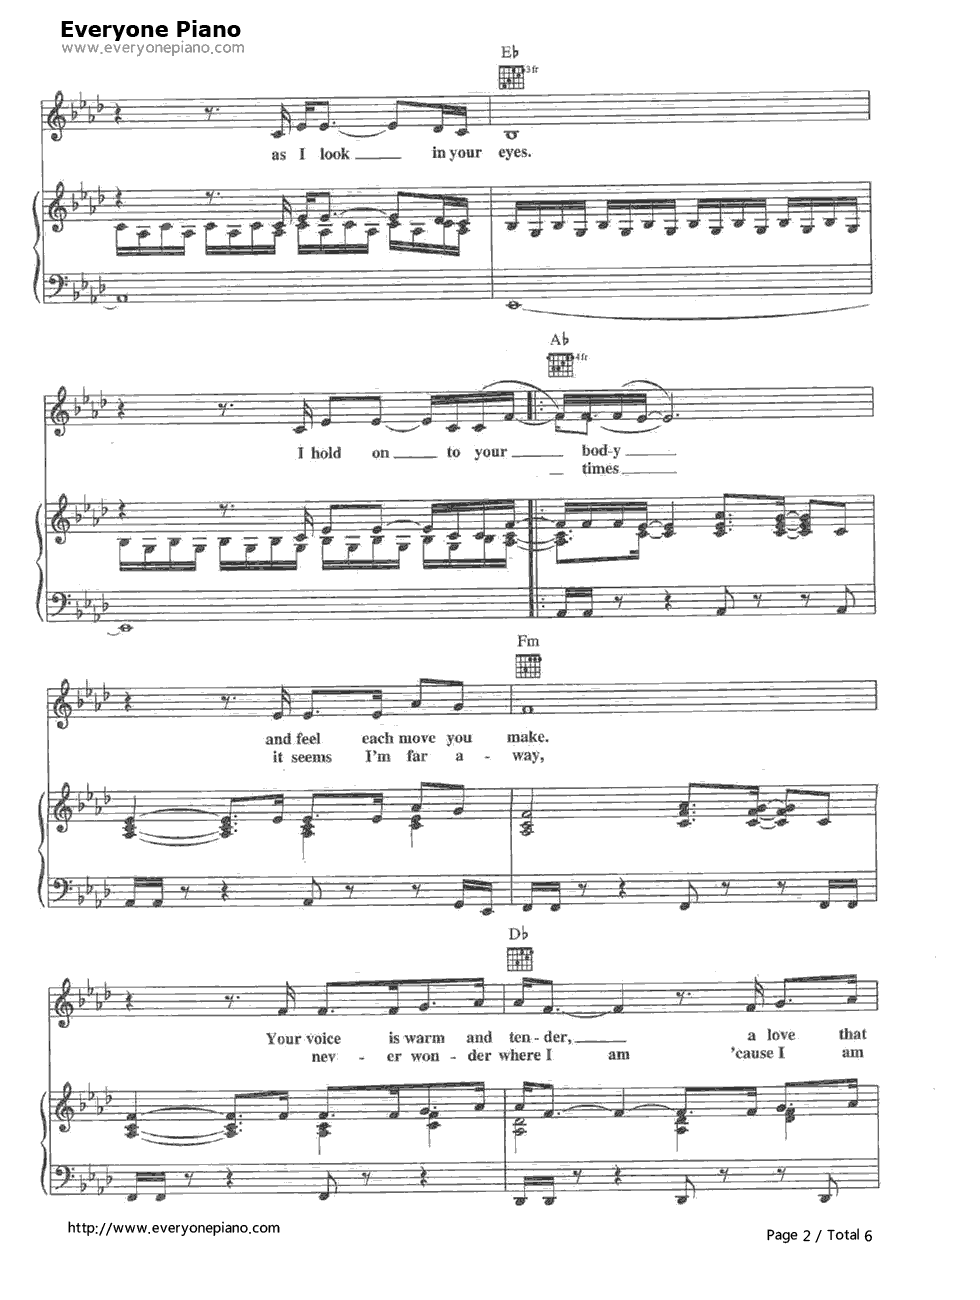 The power of love celine dion free piano sheet music piano chords the power of love celine dion stave preview 2 hexwebz Images